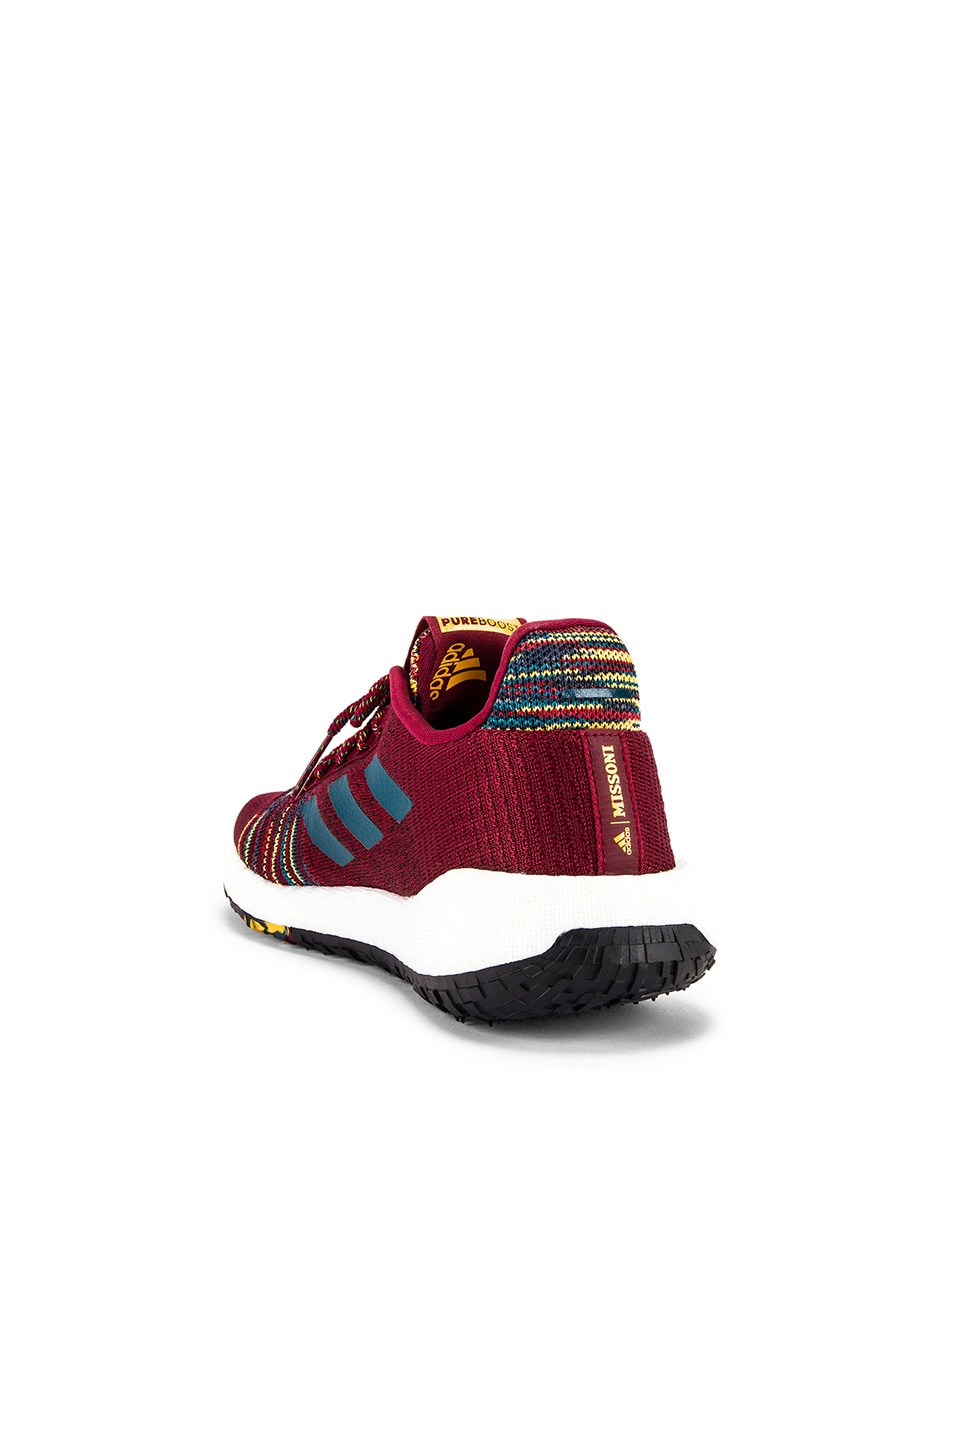 Image 3 of adidas by MISSONI Pulseboost HD in Collegiate Burgundy & Tech Mineral & Core Black